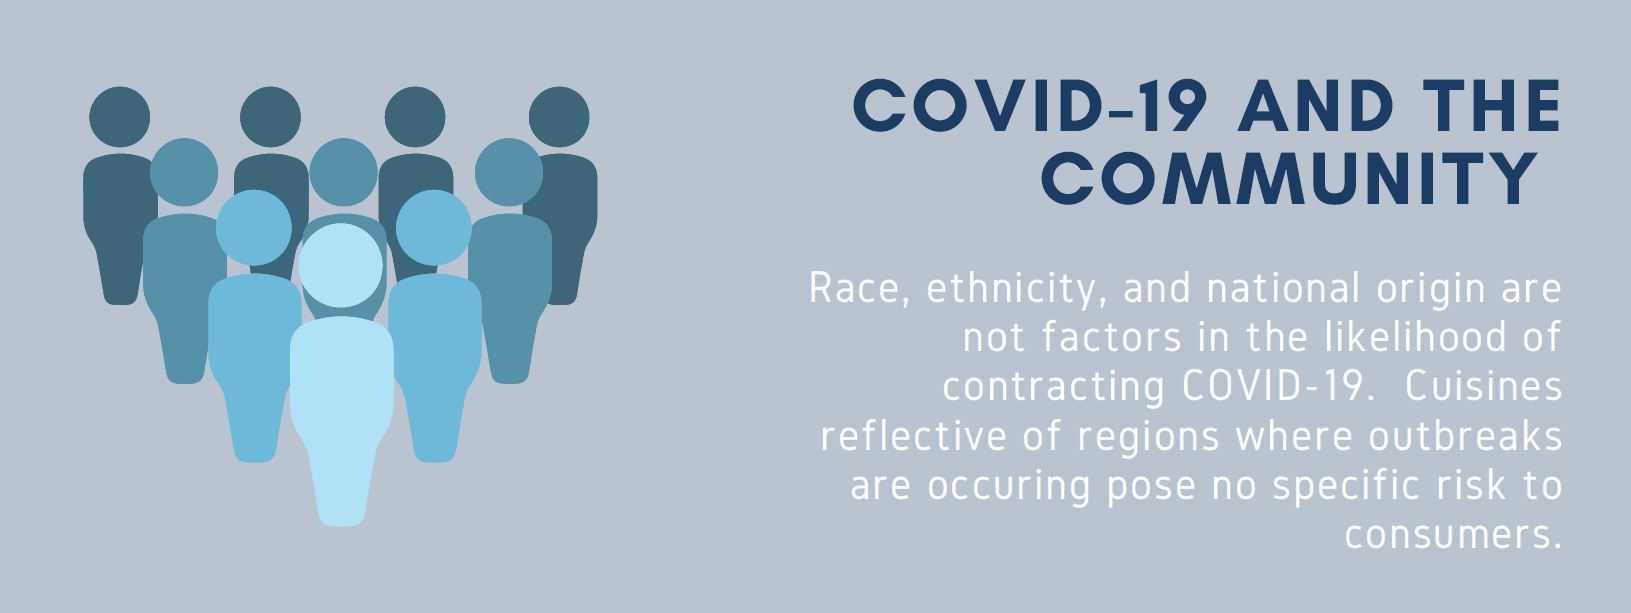 "People icon, ""Race, ethnicity, and national origin are not factors in the likelihood of contracting COVID-19. Cuisines reflective of regions where outbreaks are occurring pose no specific risk to consumers."""